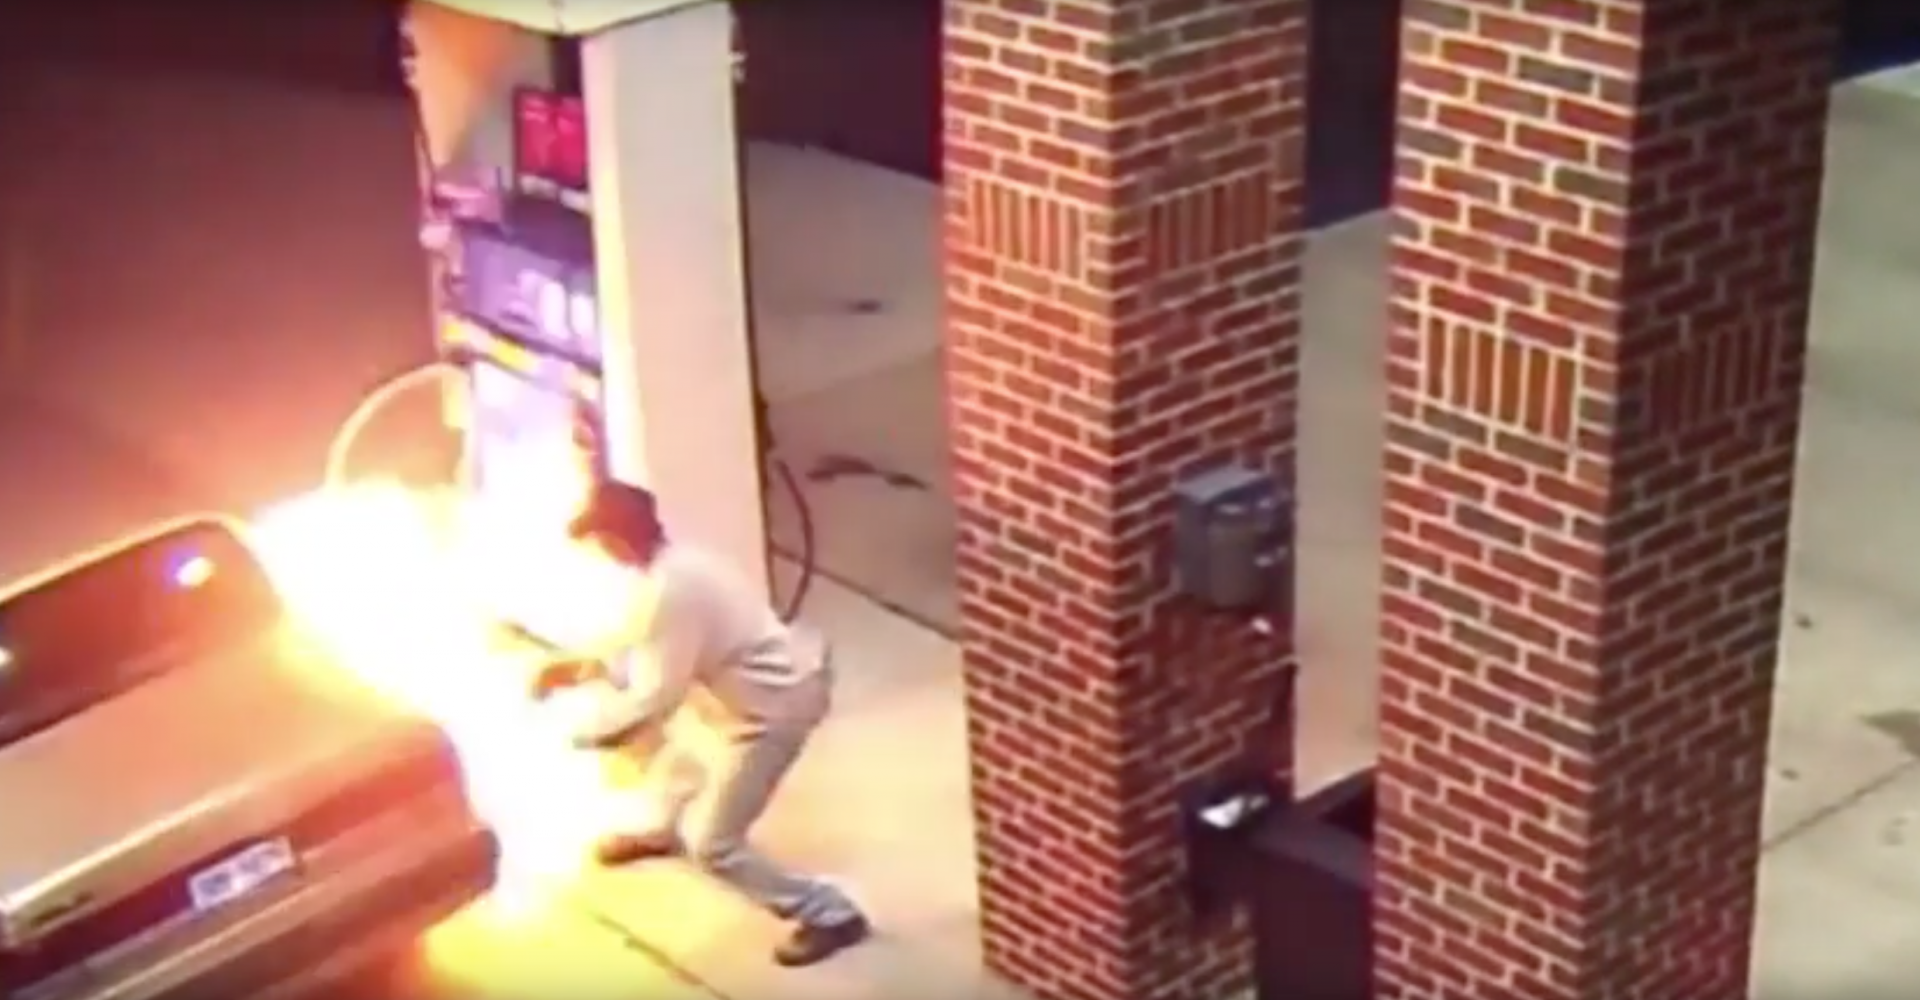 Man Tries To Kill Spider With Fire While Filling His Car With Flammable Liquid